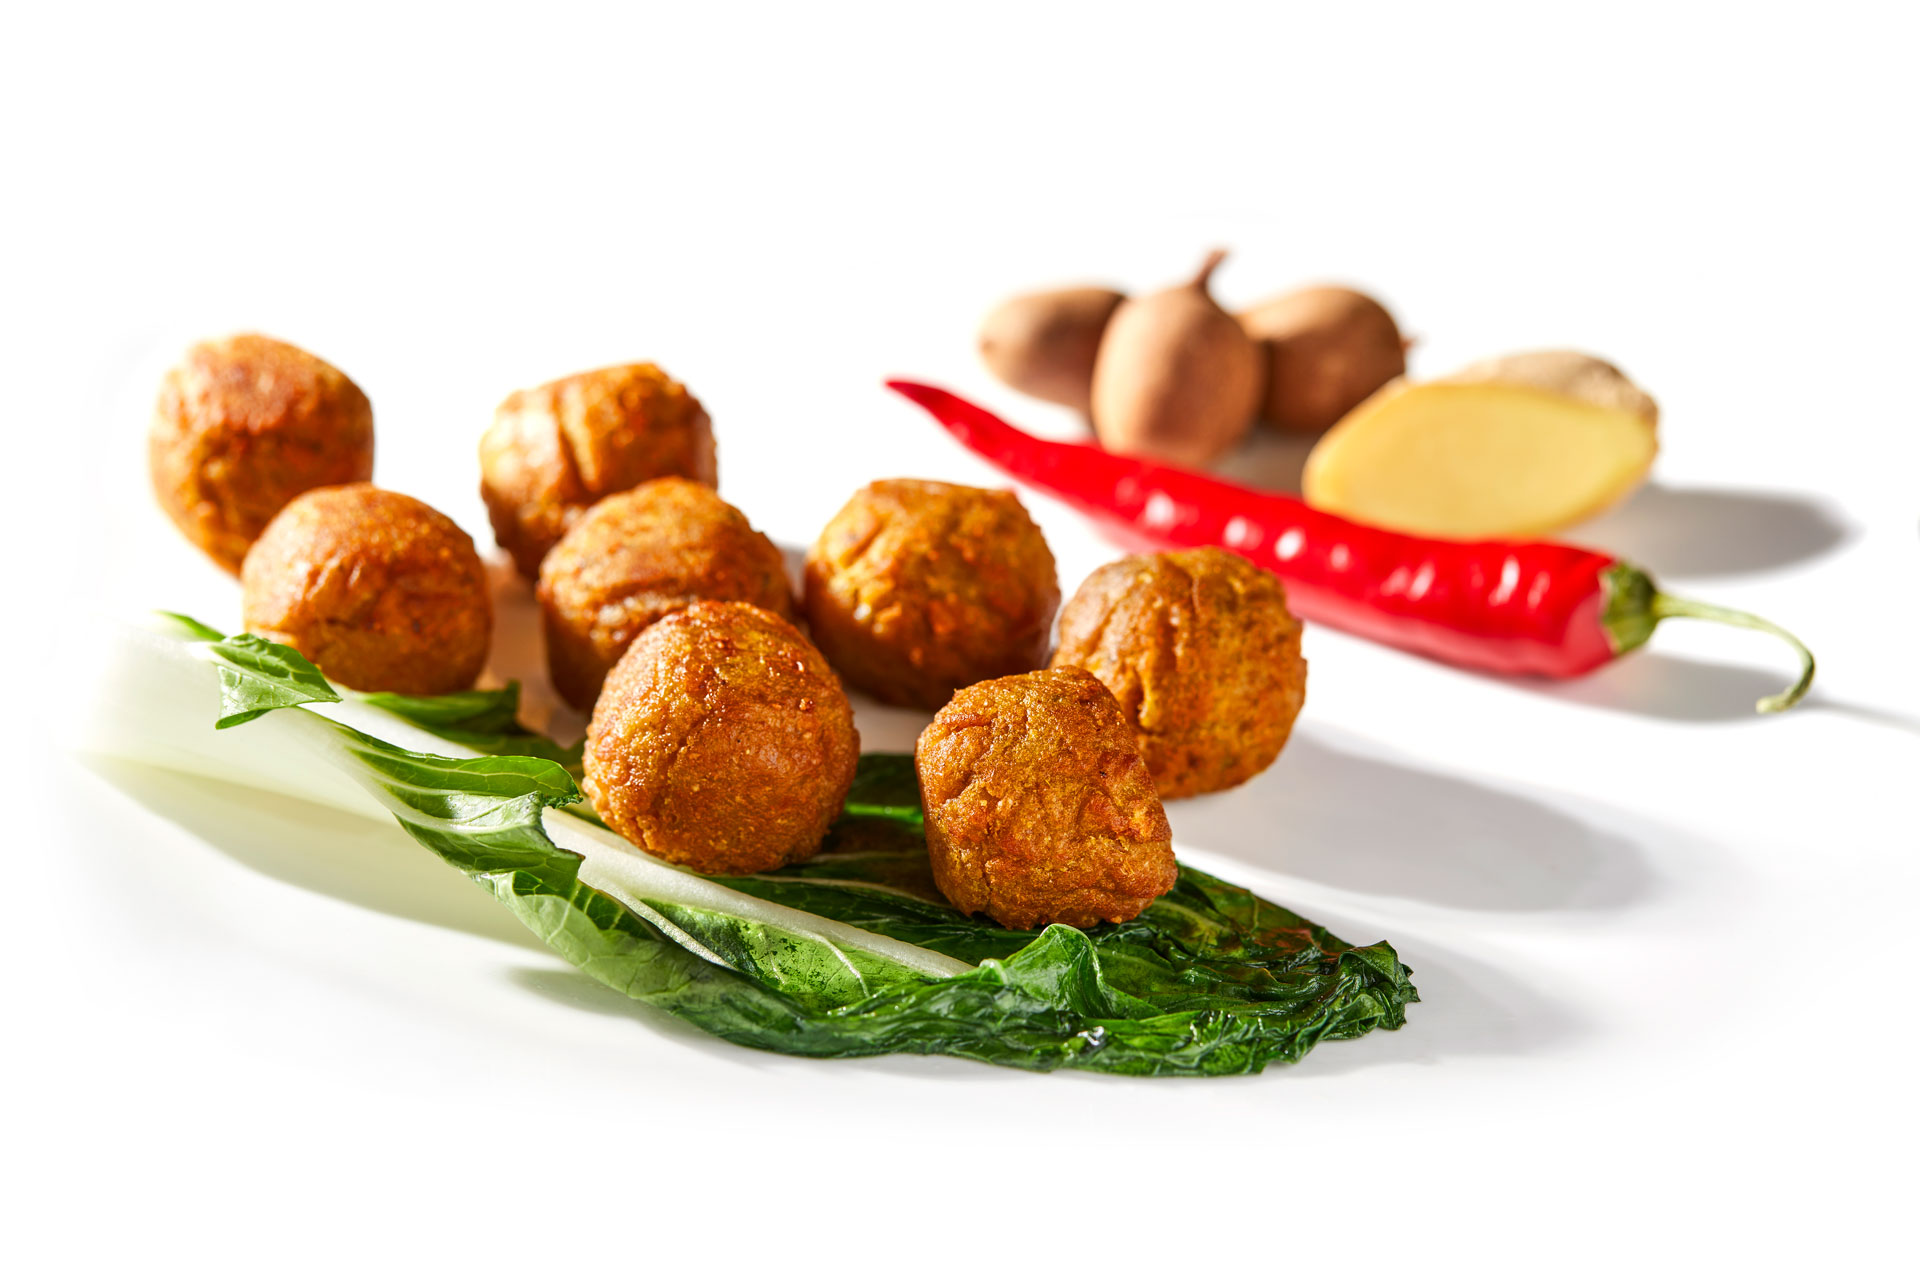 Spicy-Manis-Snack_1920x1280px[1]